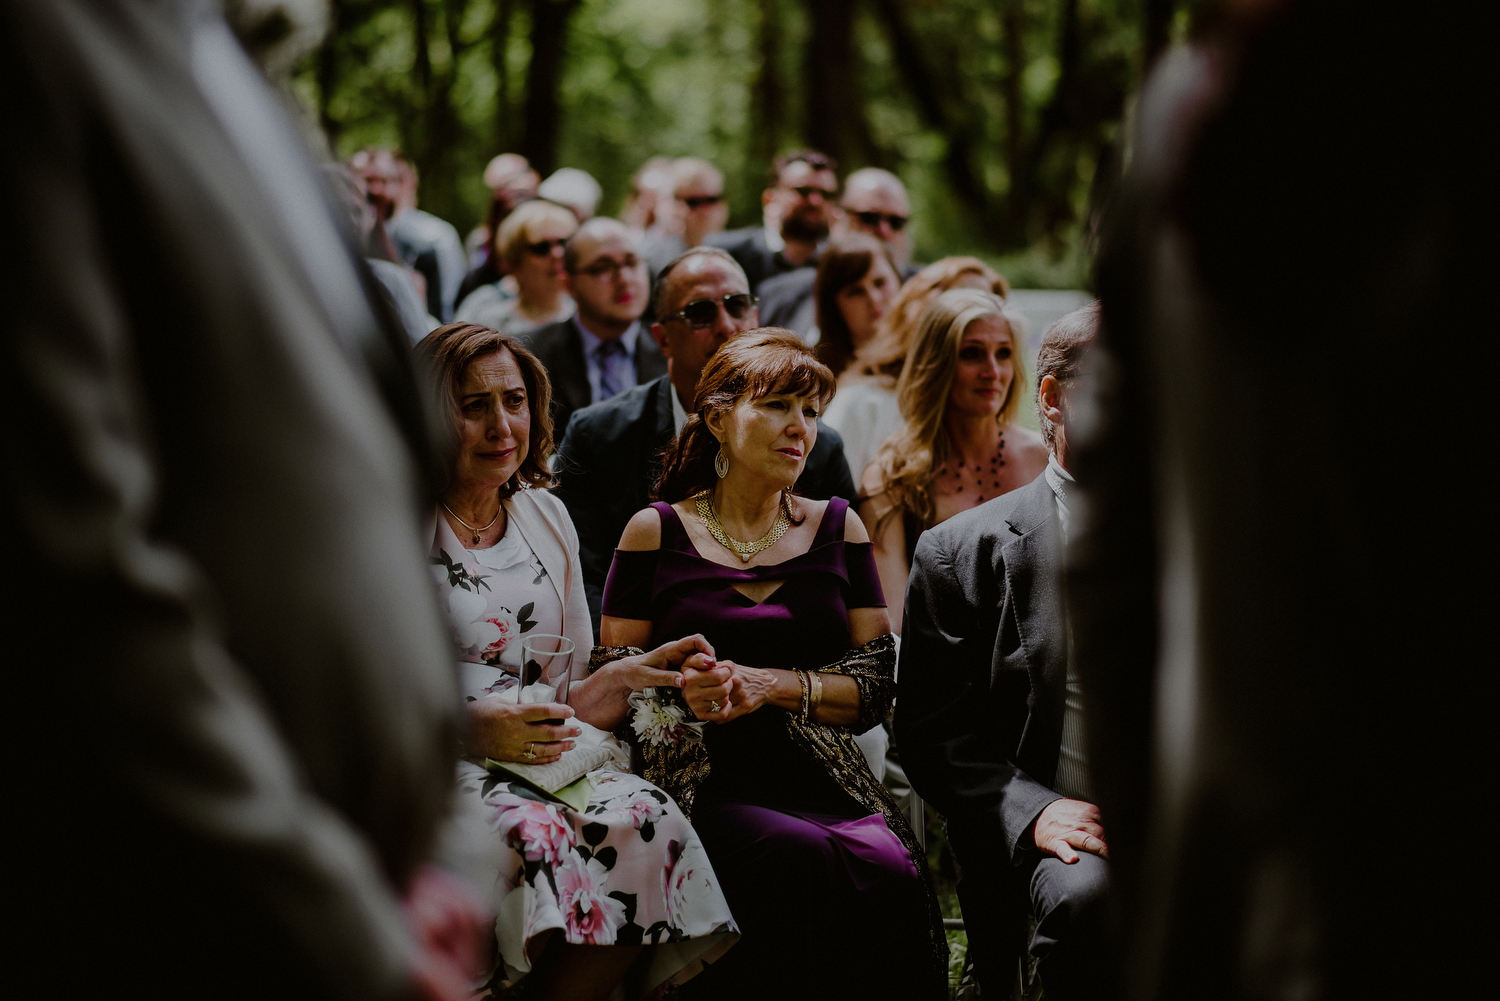 documentary wedding photography pictures in nj